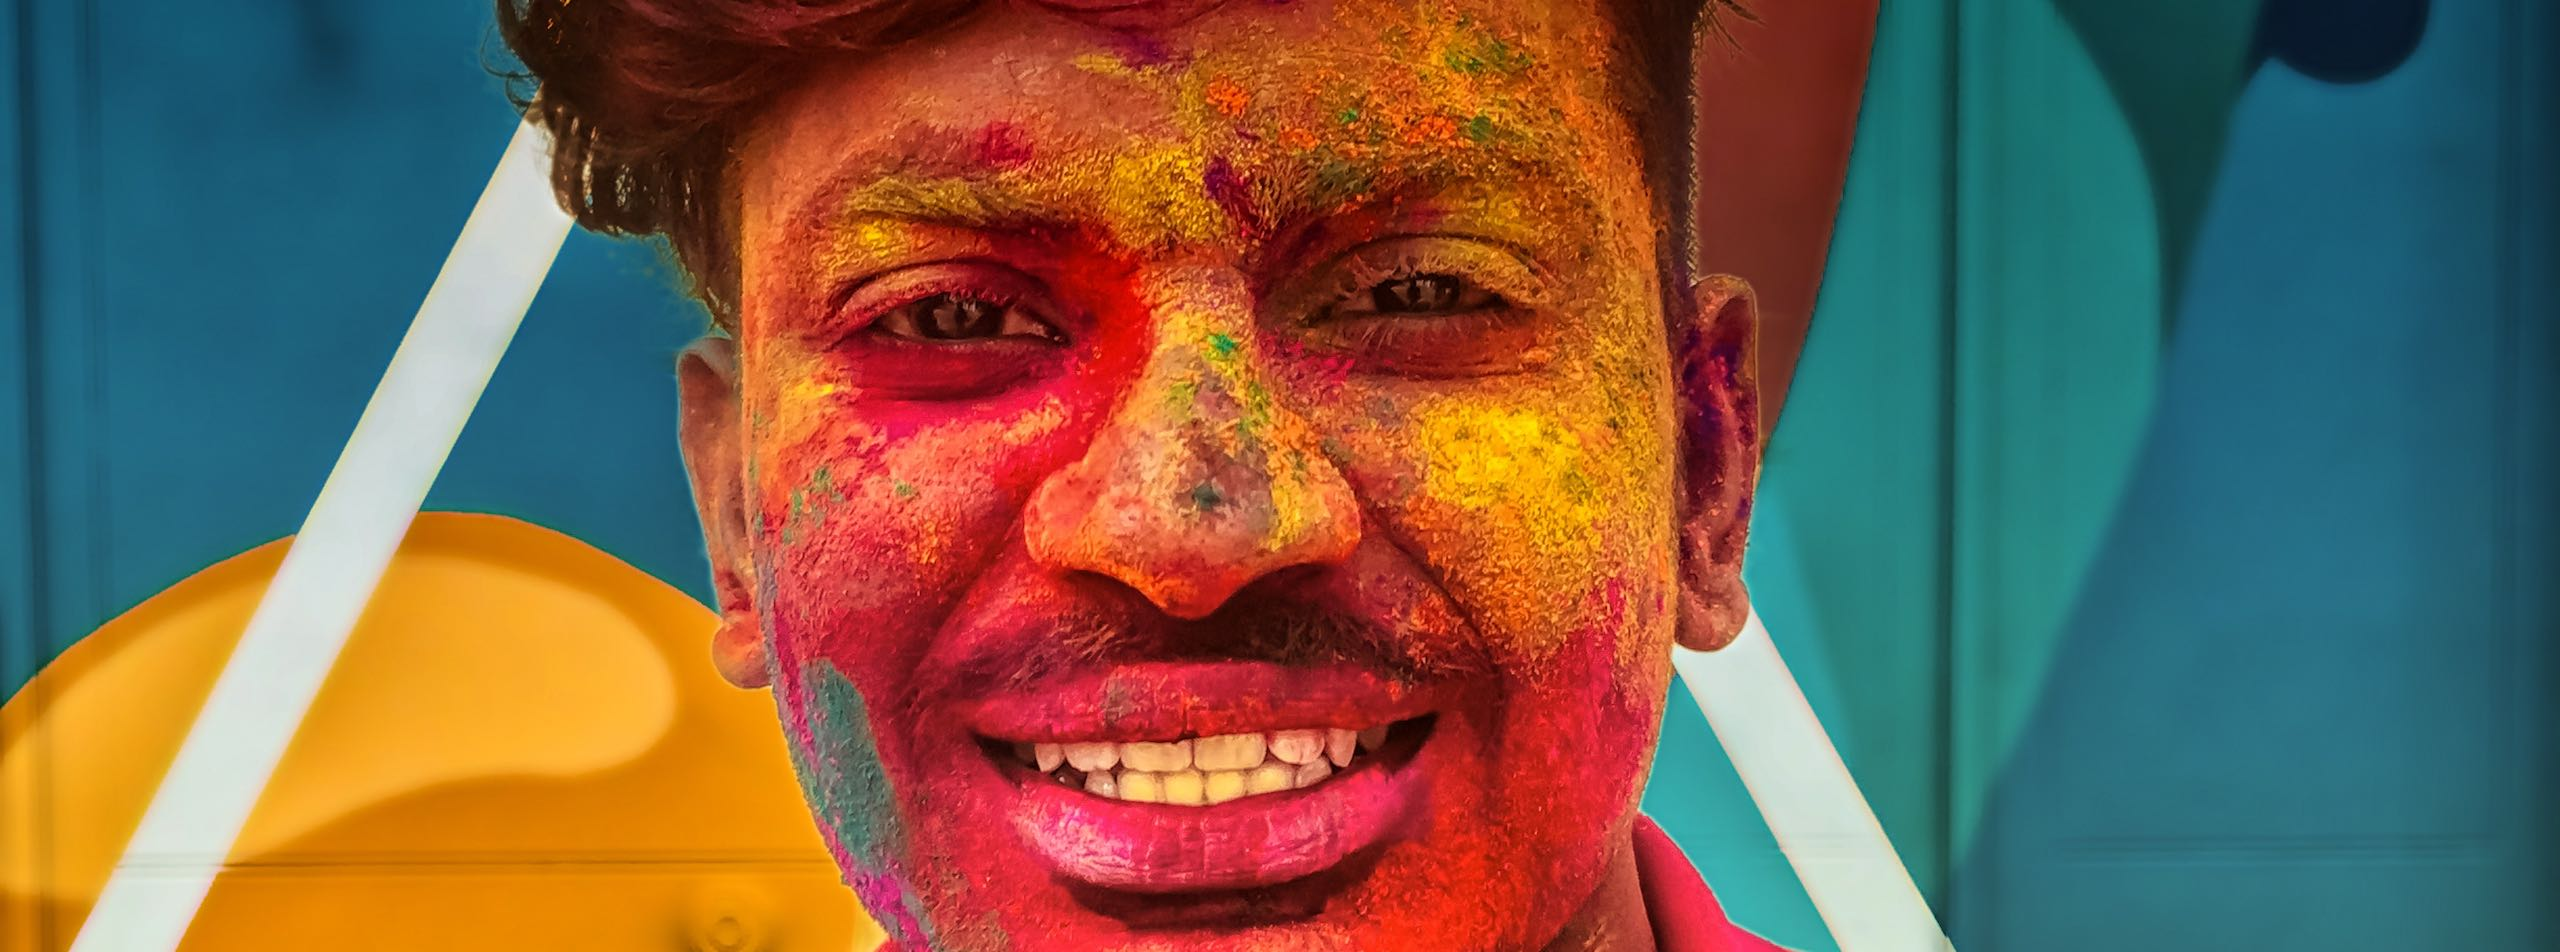 Colorful face of a man during Holi